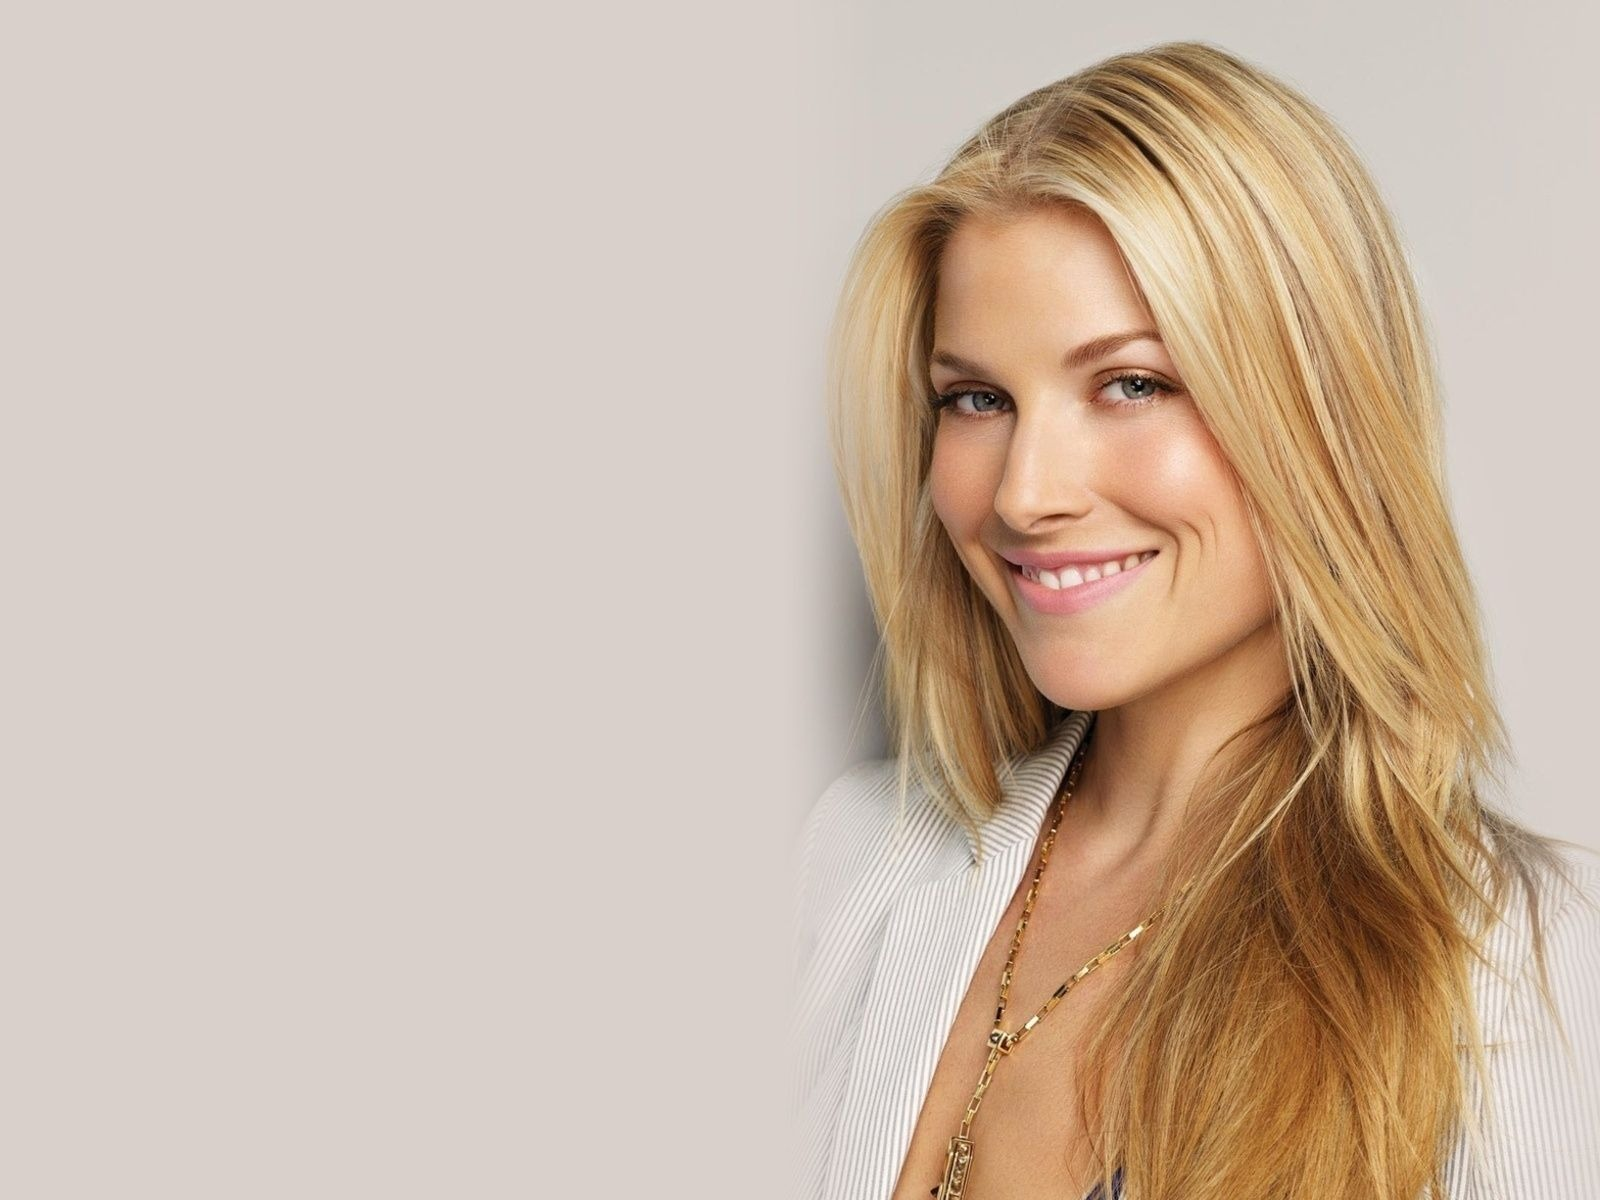 Ali Larter #005 - 1600x1200 Wallpapers Pictures Photos Images